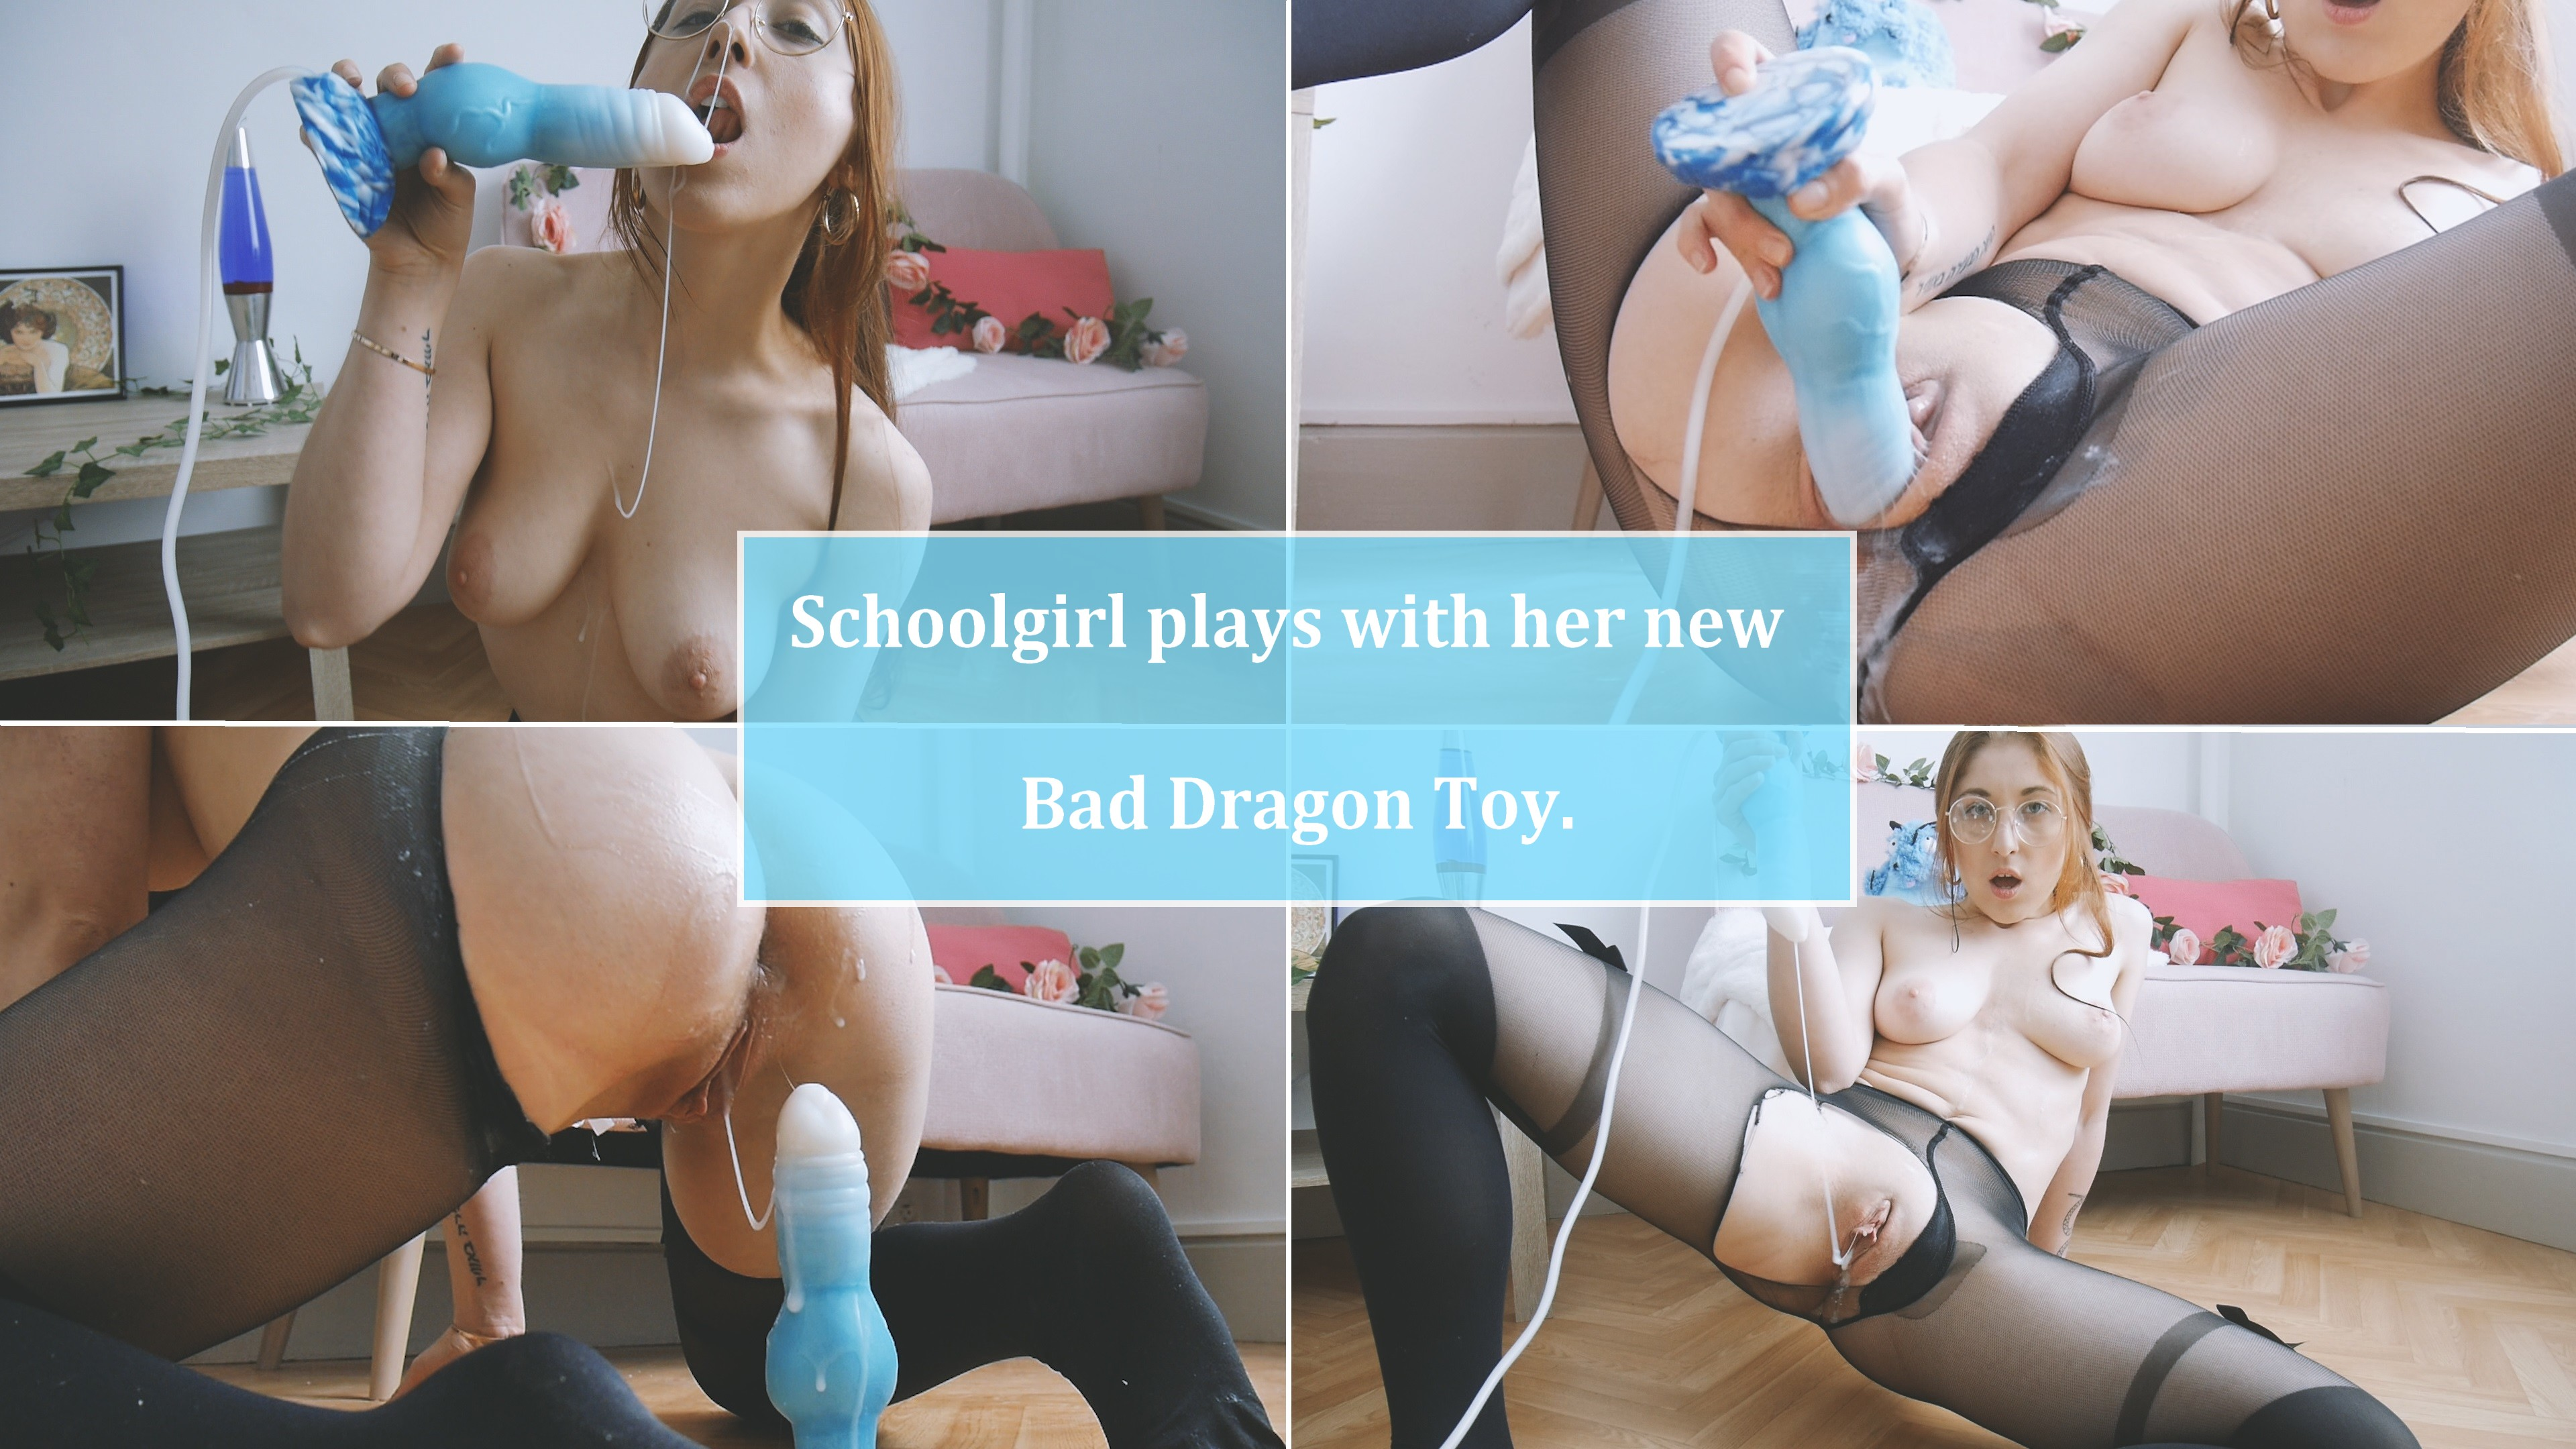 CUMPLAY - Schoolgirl Plays With Her New Bad Dragon